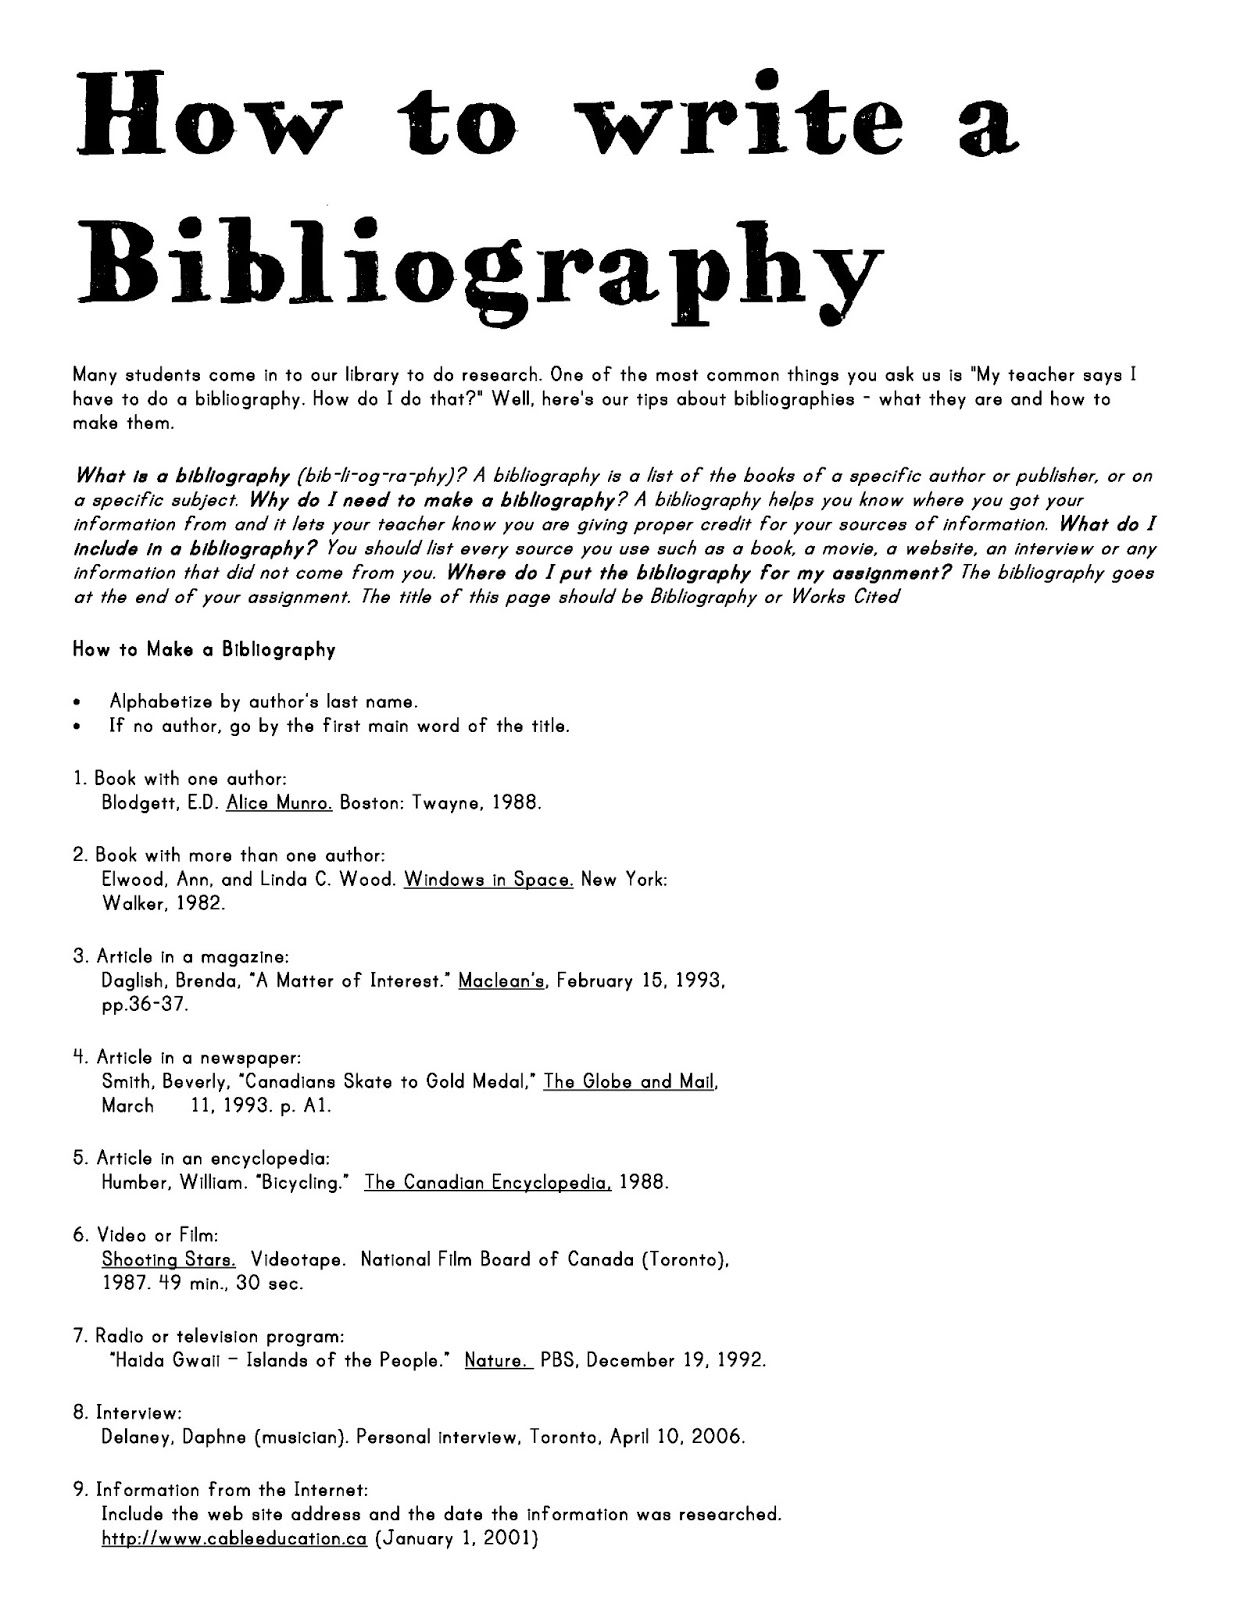 How to do a dissertation bibliography